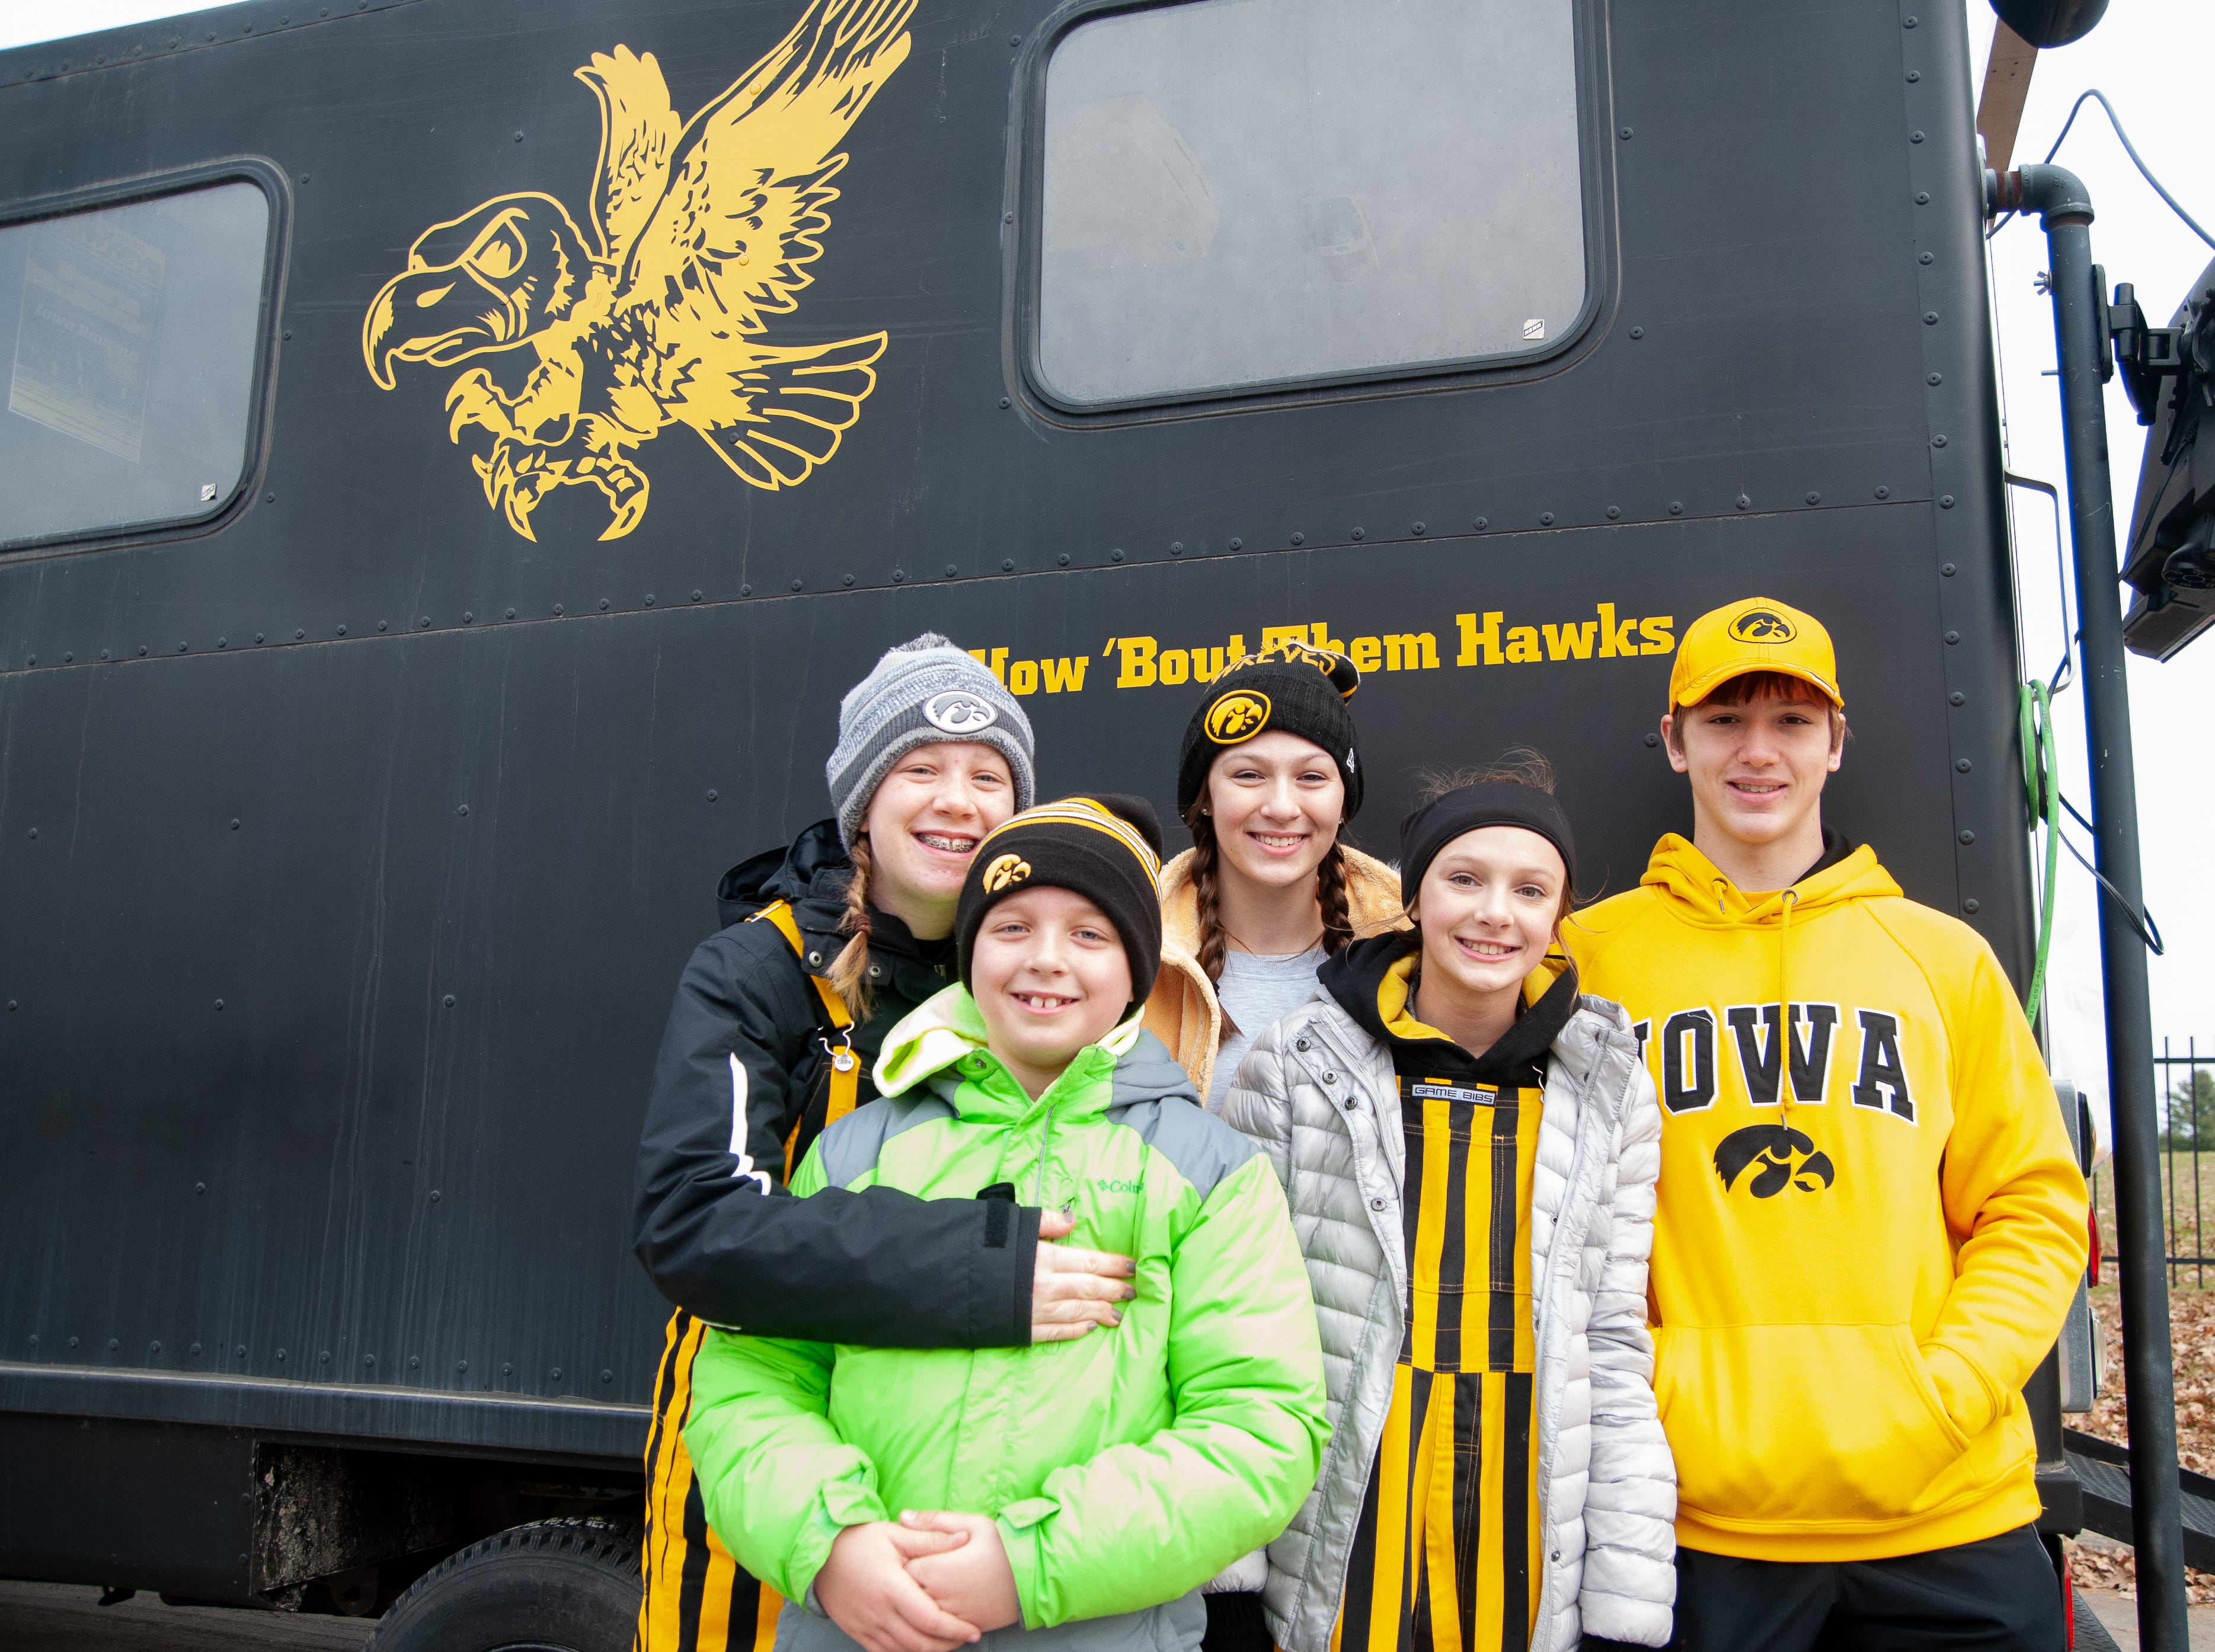 The Wibel, Mcdermott and Pitlik families, of South Dakota and Mount Vernon, Friday, Nov. 23, 2018, while tailgating before the Iowa game against Nebraska in Iowa City.